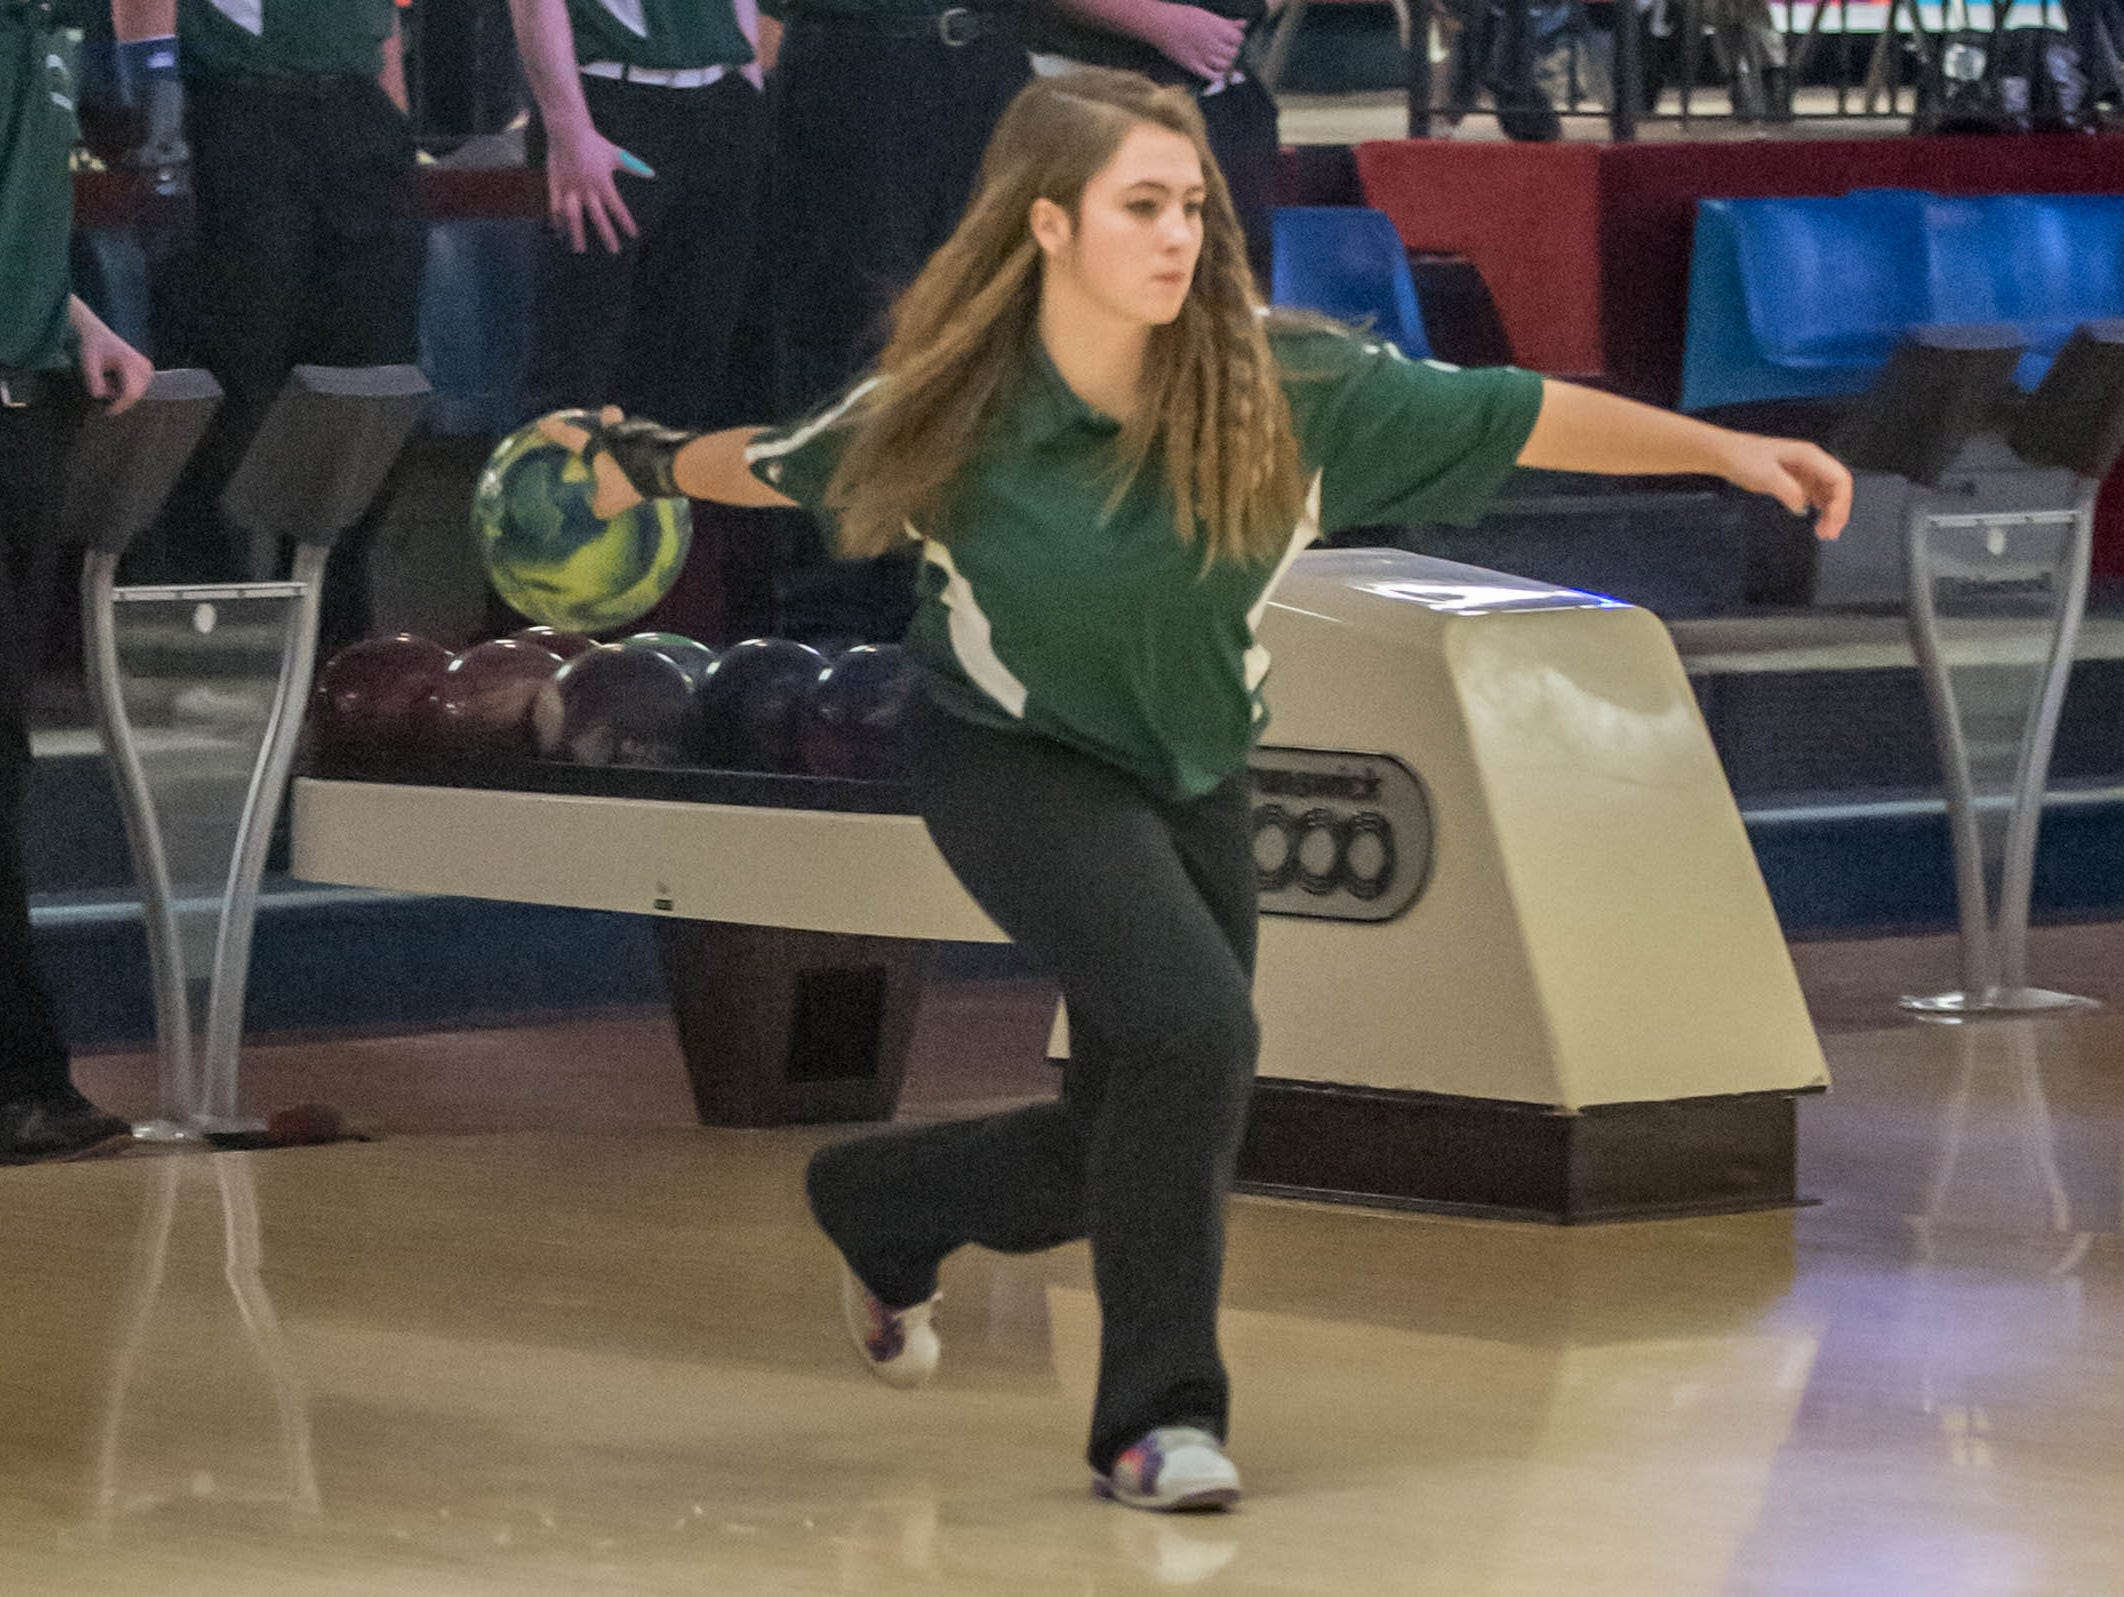 Pennfield freshman Makayla Skidmore during the All-City Bowling Meet at Nottke's on Thursday.